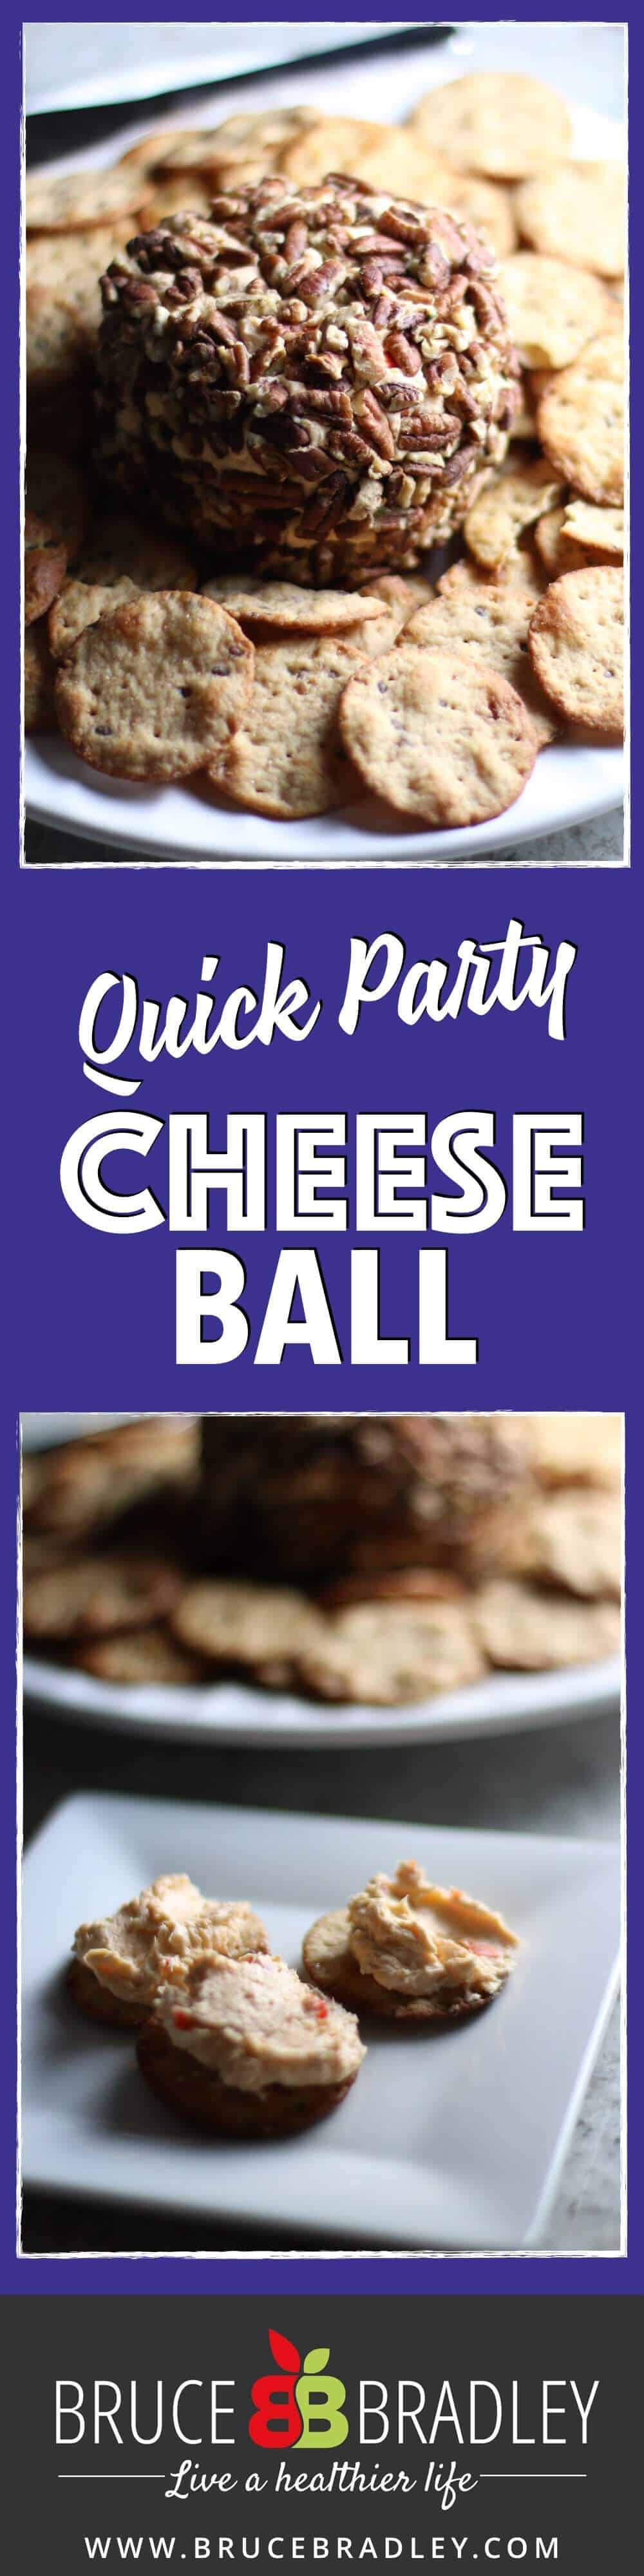 This Quick Party Cheese Ball recipe is a crowd-pleasing appetizer that can be made ahead of time and is made from real ingredients!